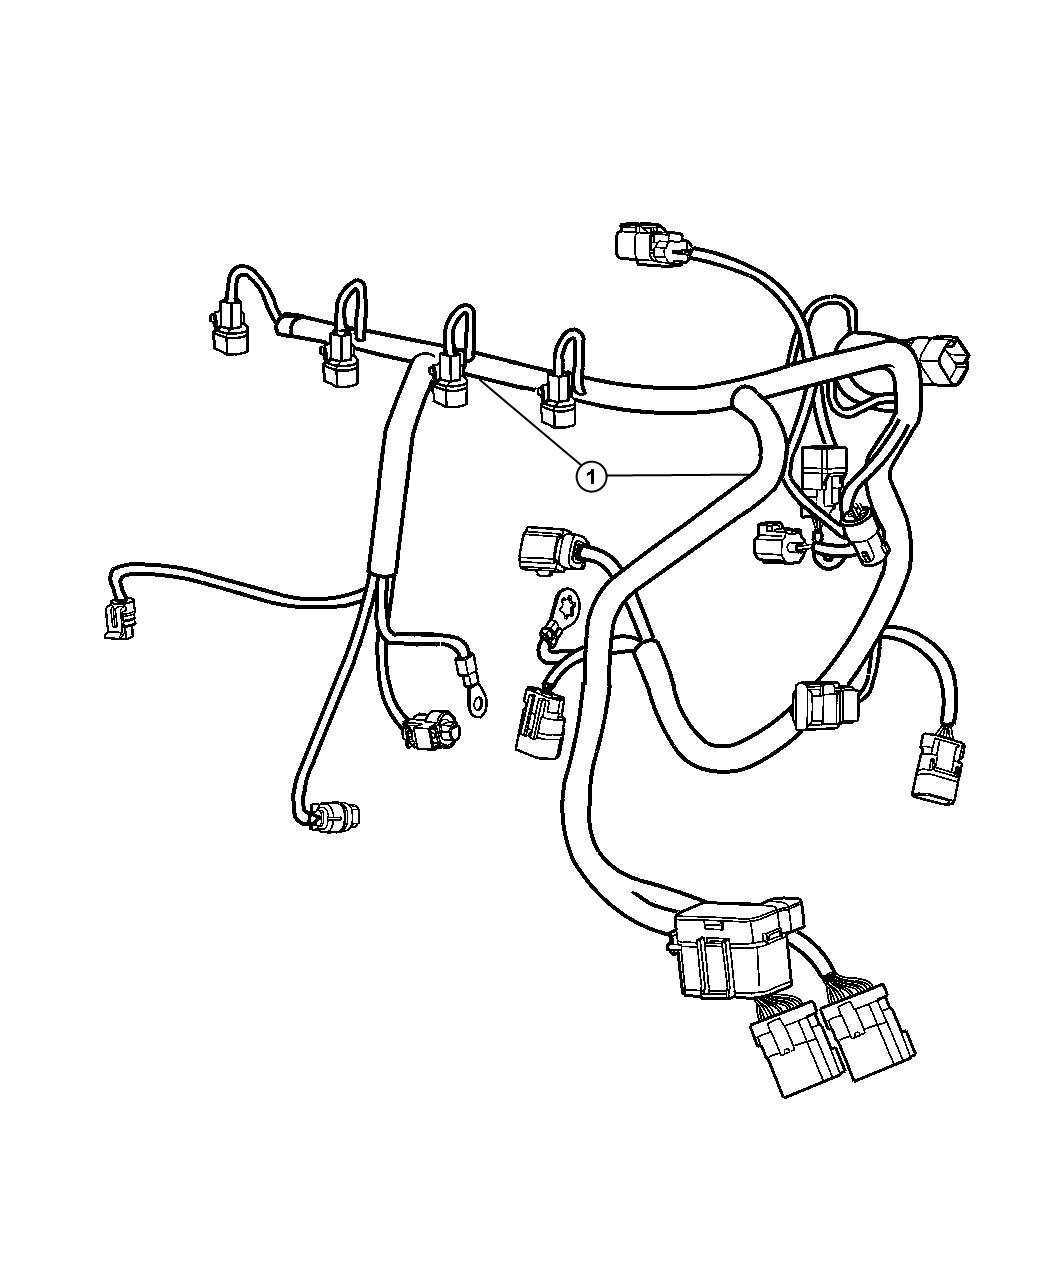 Chrysler Pt Cruiser Wiring Battery